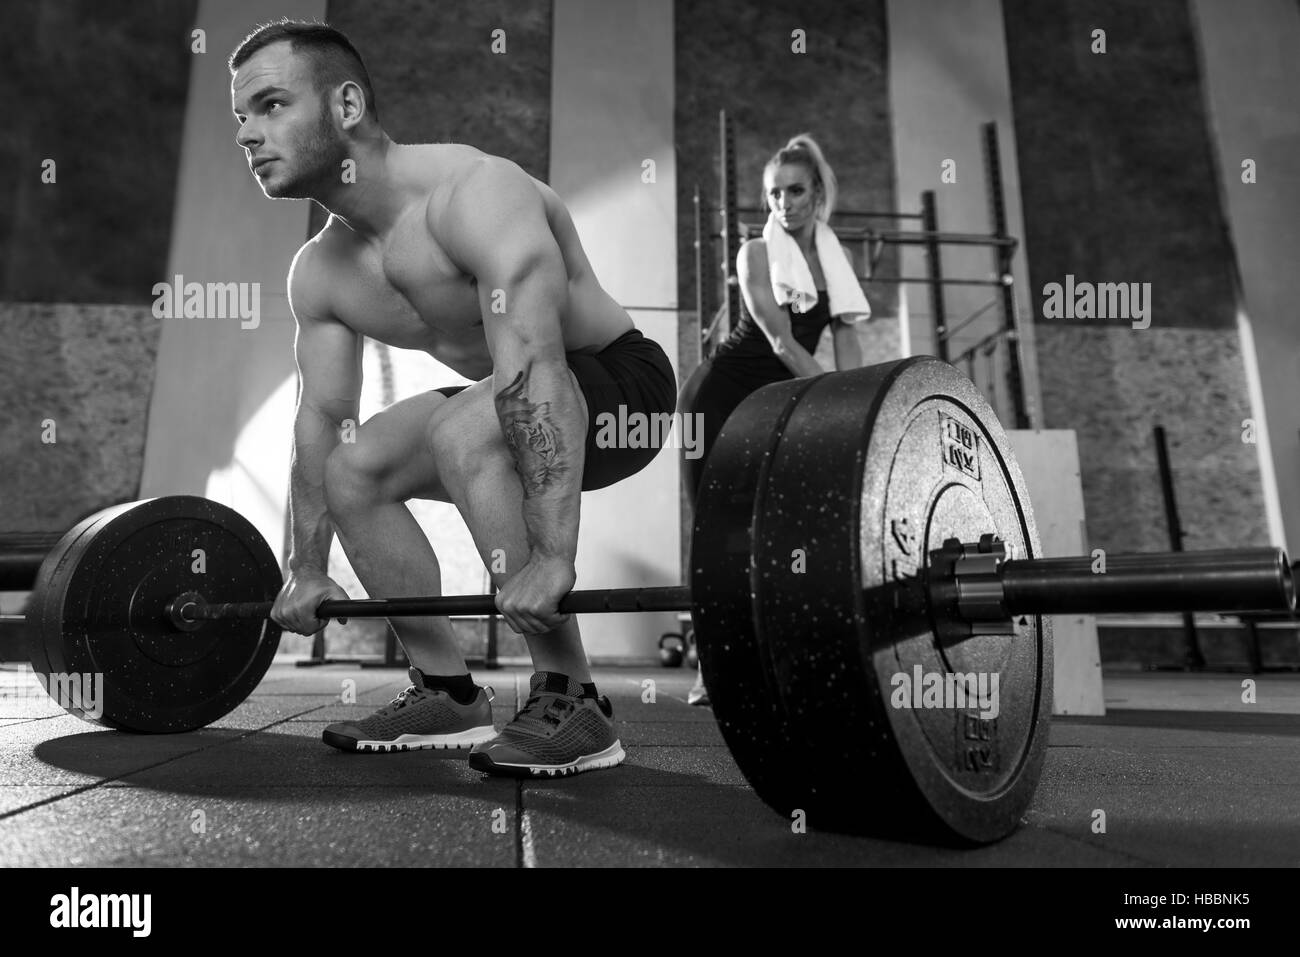 Powerful athletic bodybuilder holding on to the barbell - Stock Image